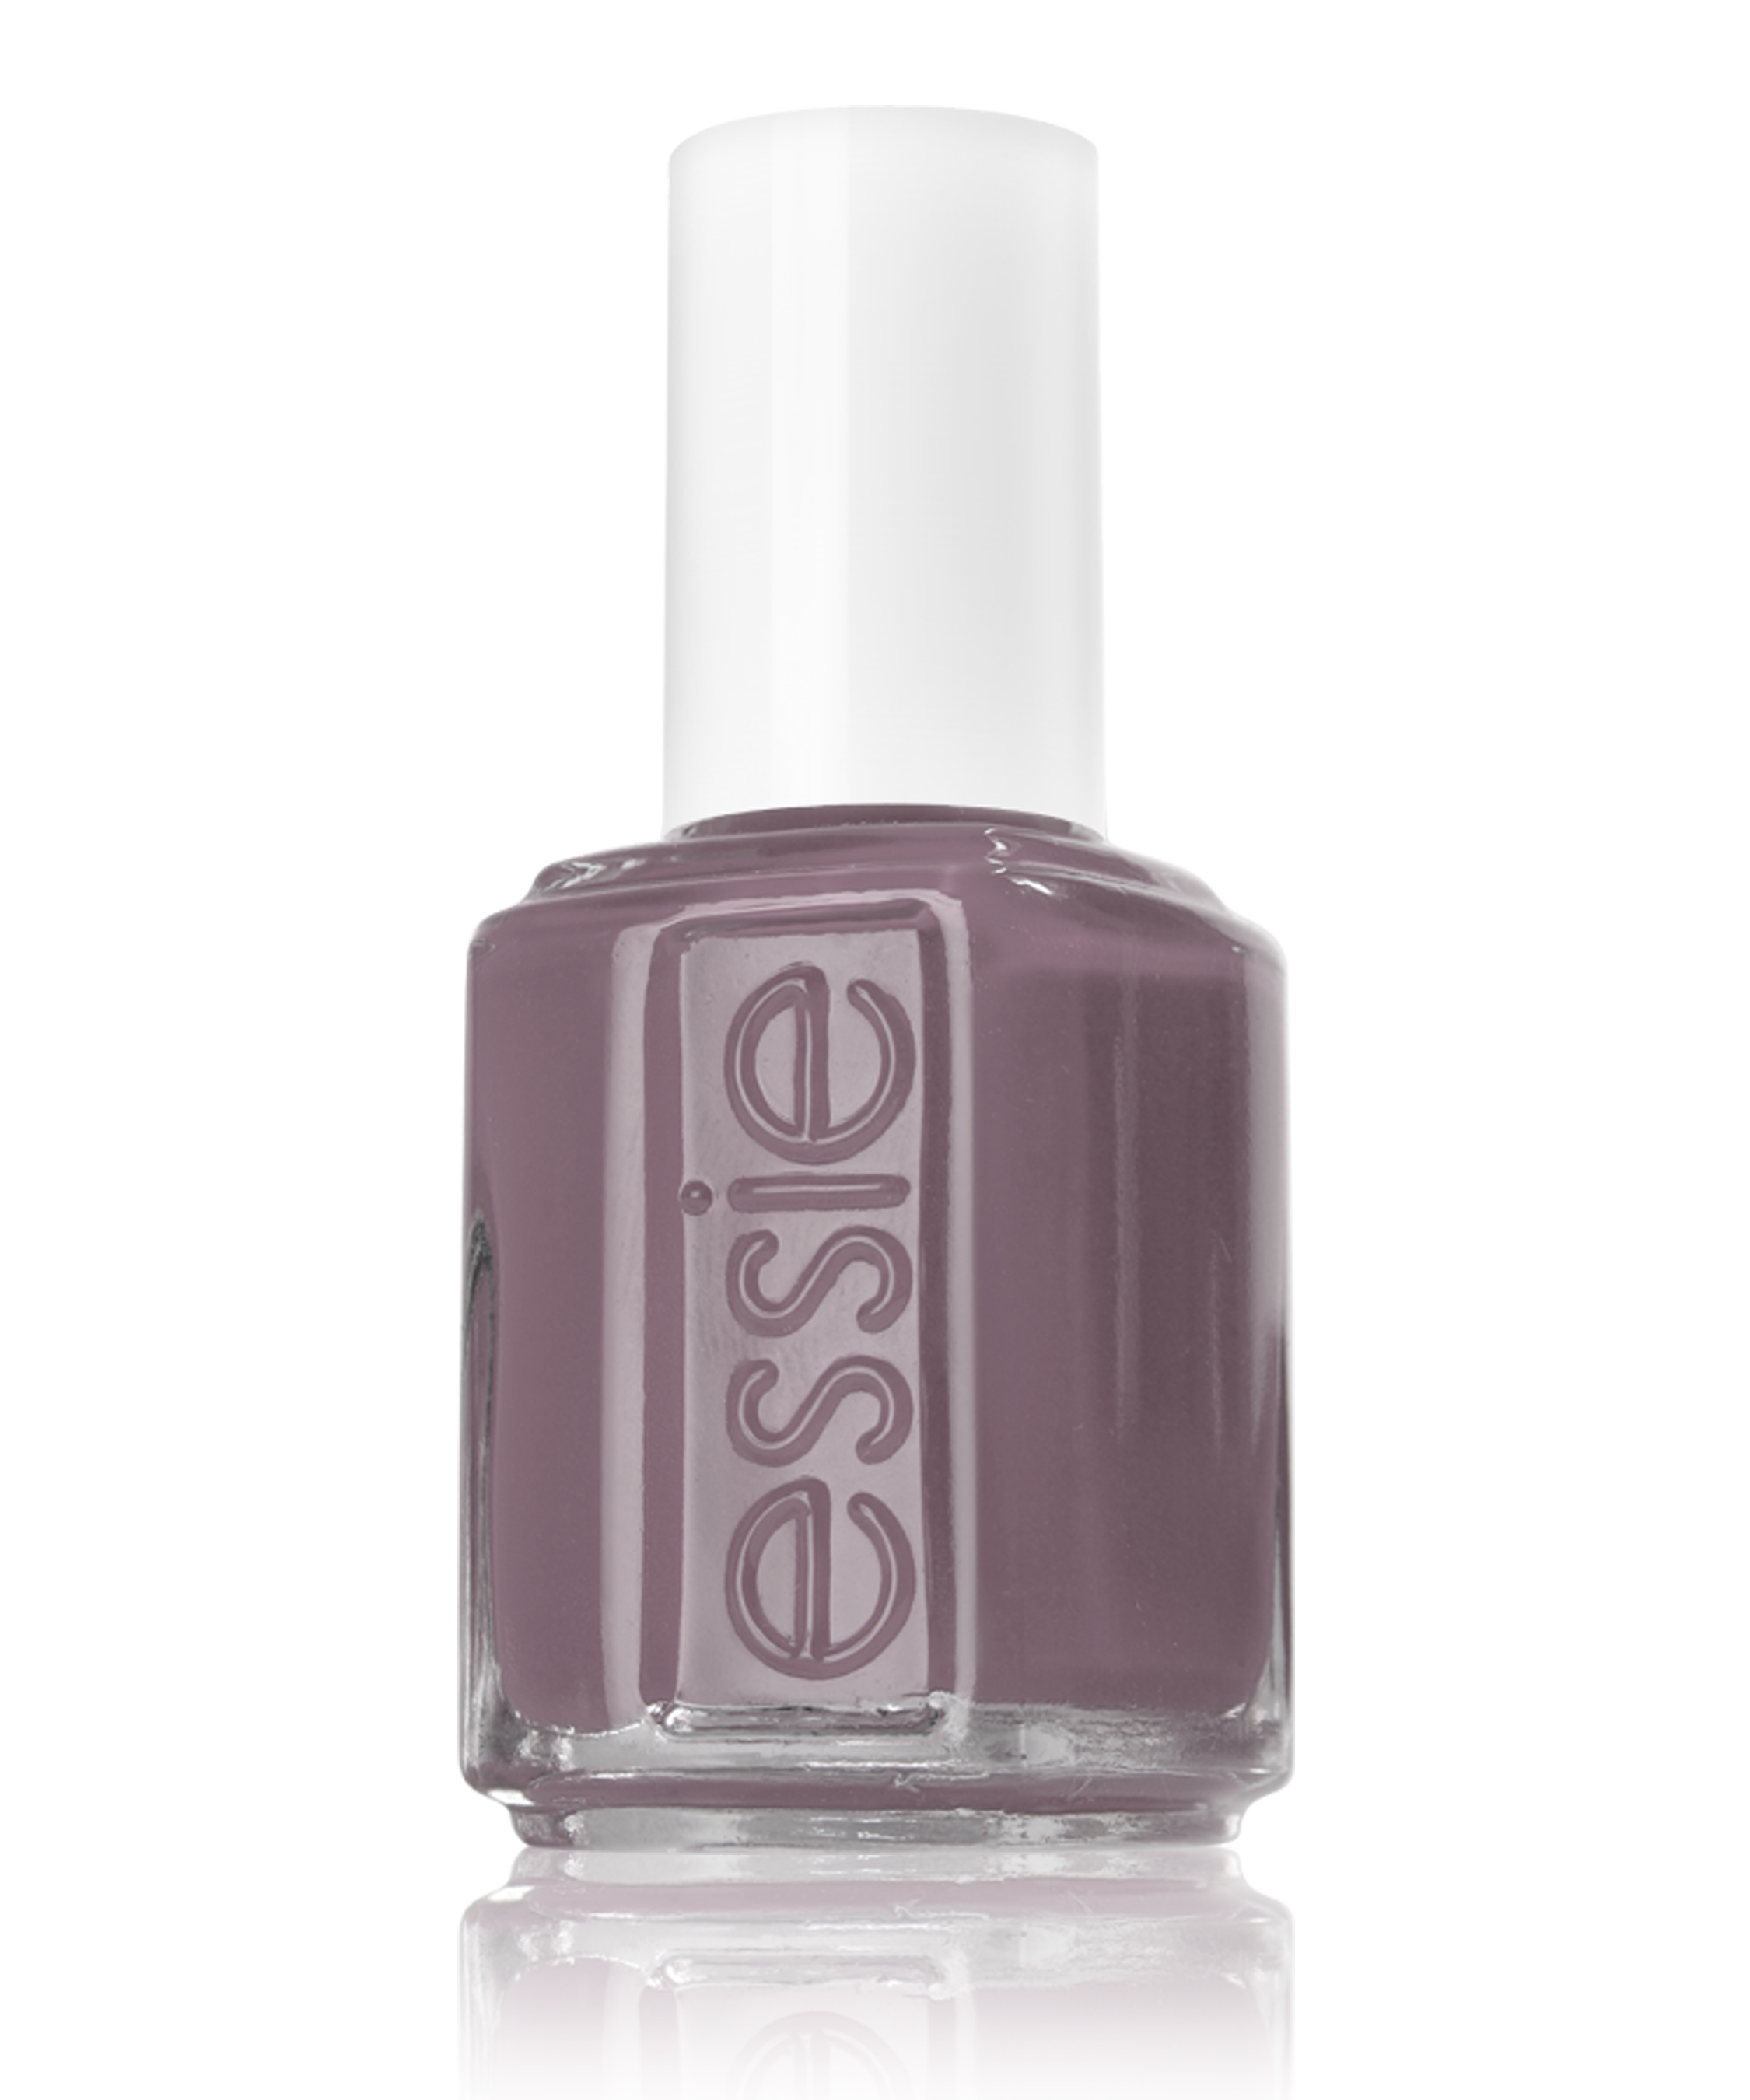 Essie 730 - MERINO COOL 13.5Ml